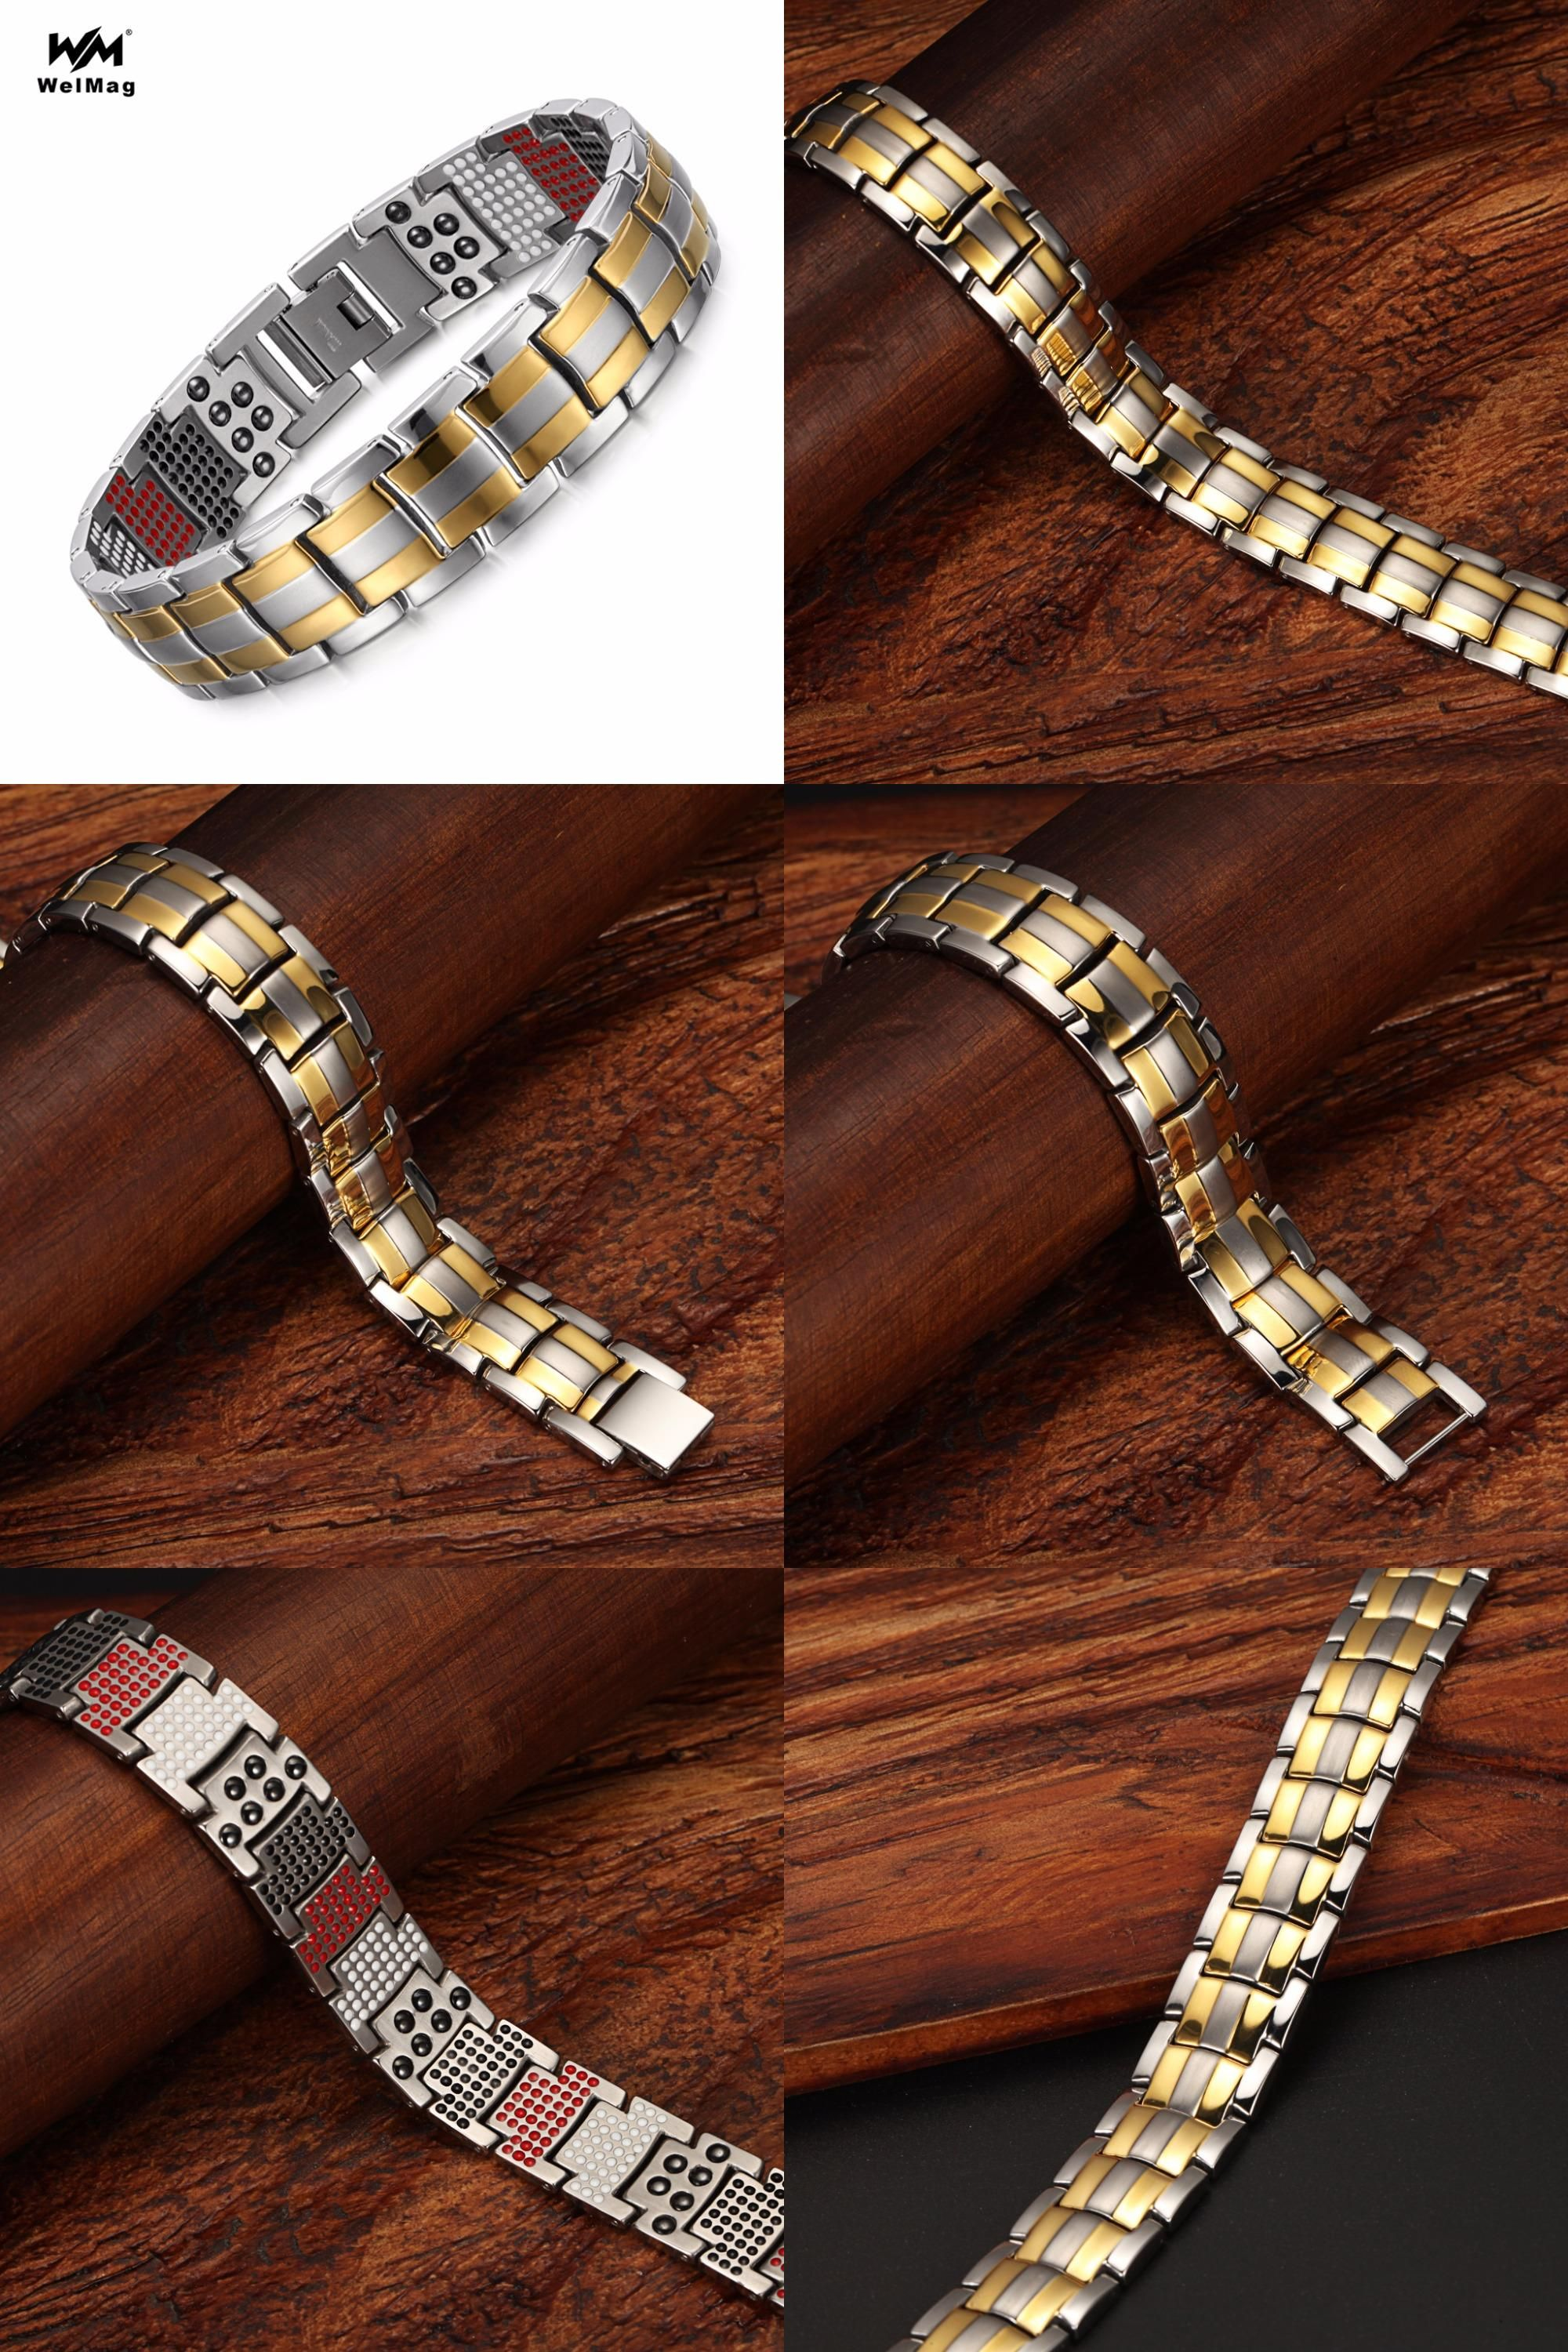 Visit to buy welmag fashion jewelry healing fir magnetic bracelets